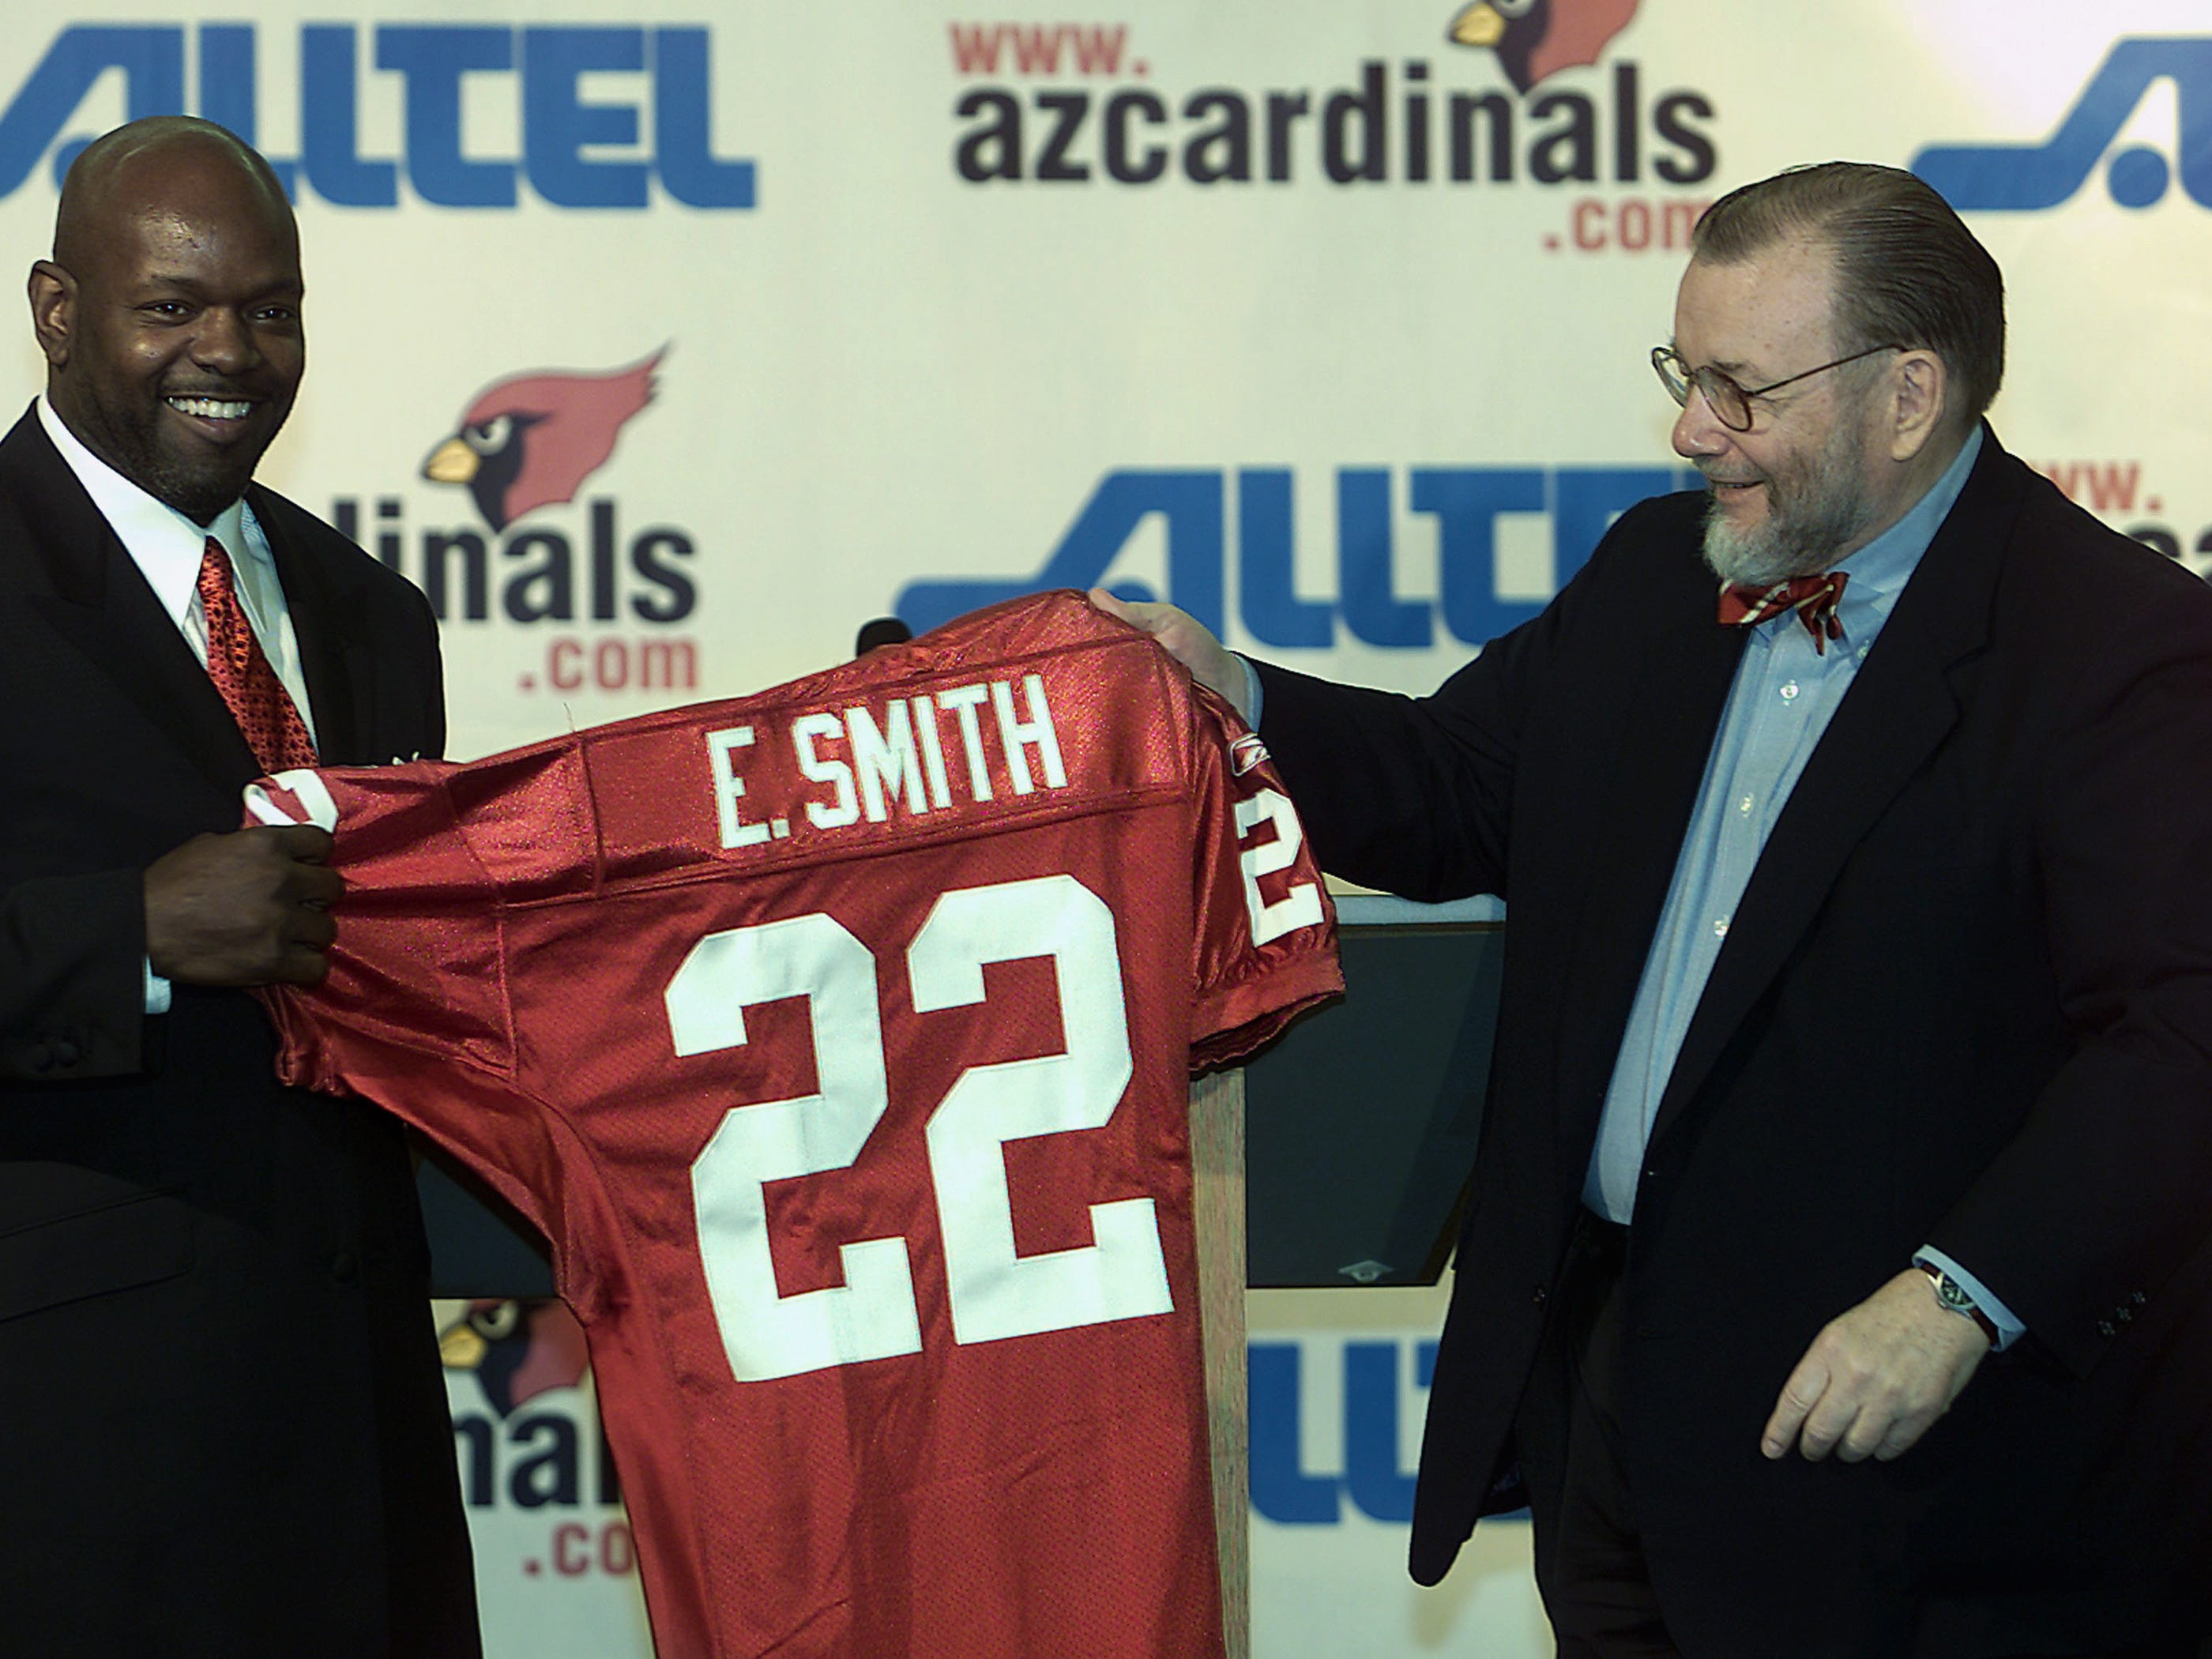 Emmit Smith poses with his jersey after signing with the Arizona Cardinals.